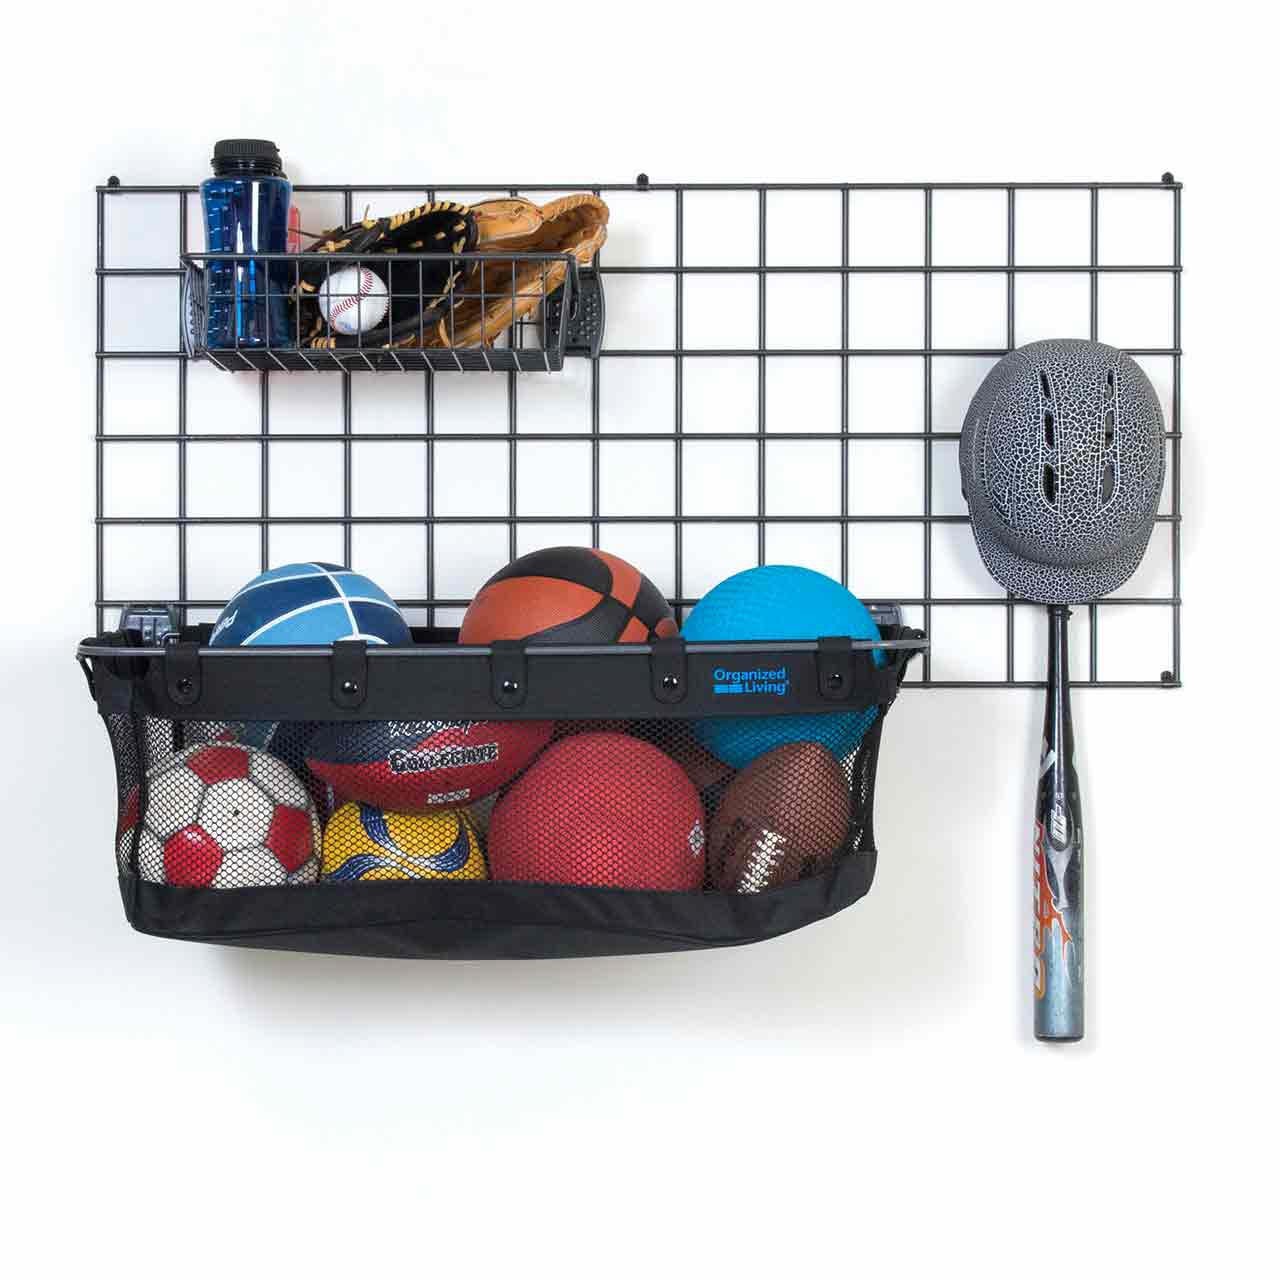 Sports Ball - Activity Organizer Kit